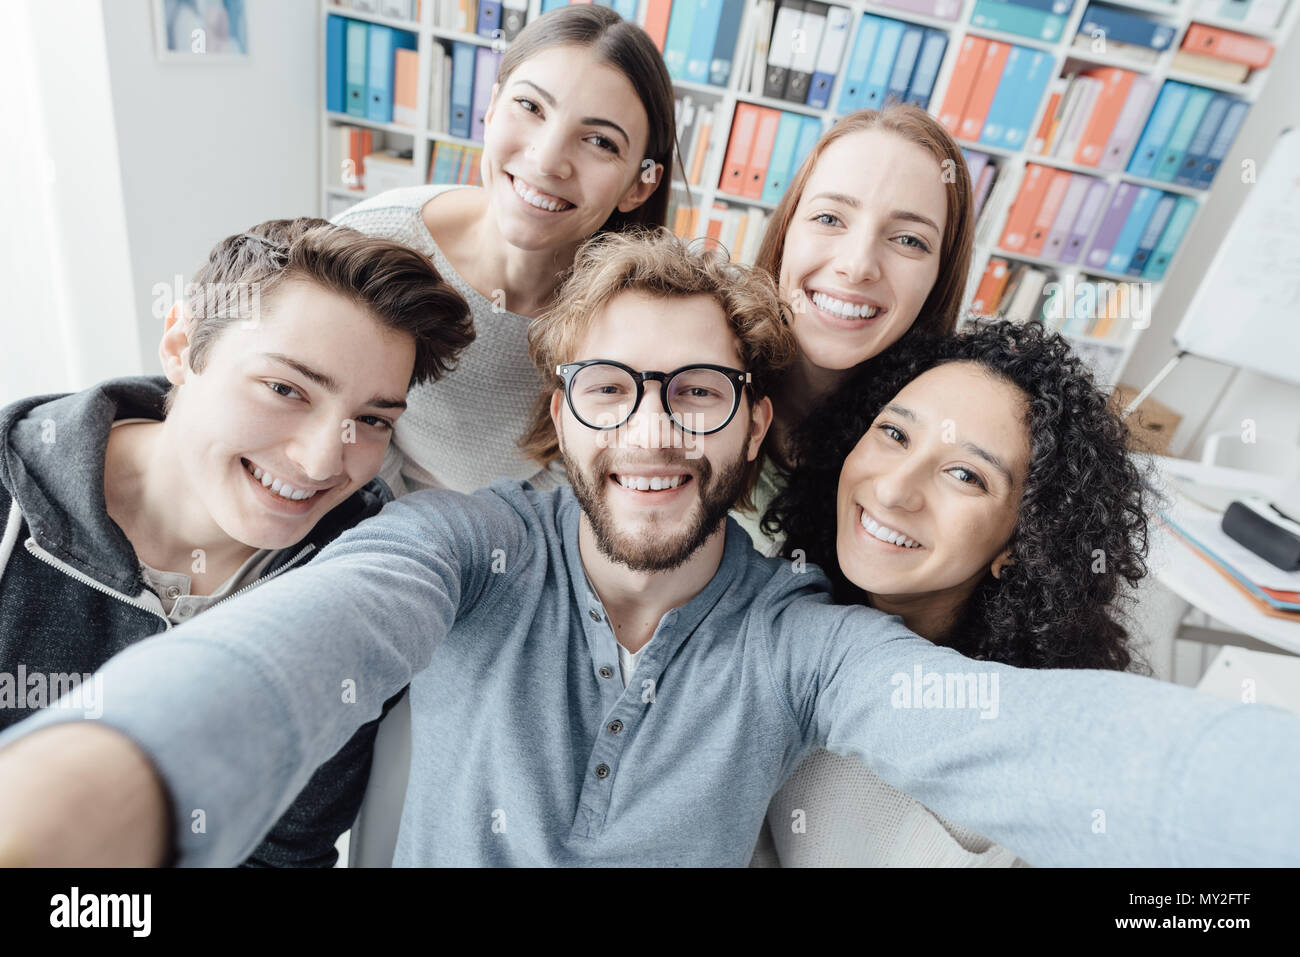 Students taking a selfie together and smiling, togetherness and leisure concept - Stock Image